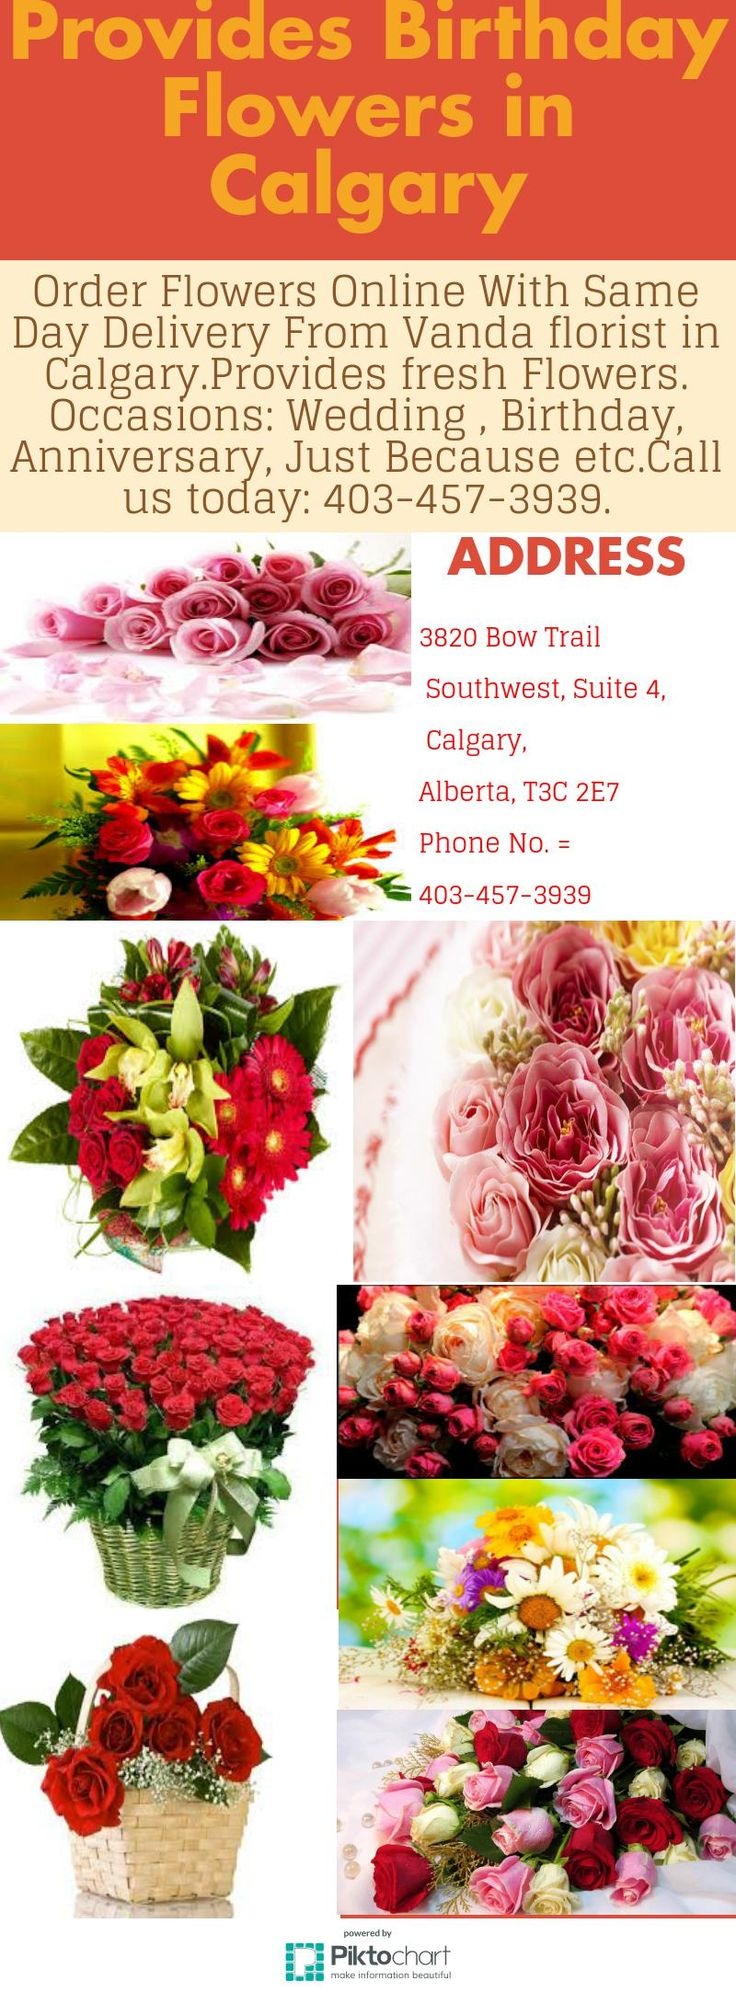 10 best christmas flower calgary images on pinterest calgary order flowers online with same day flower delivery in calgary from vanda floristovides fresh flowers for occasions like wedding birthday izmirmasajfo